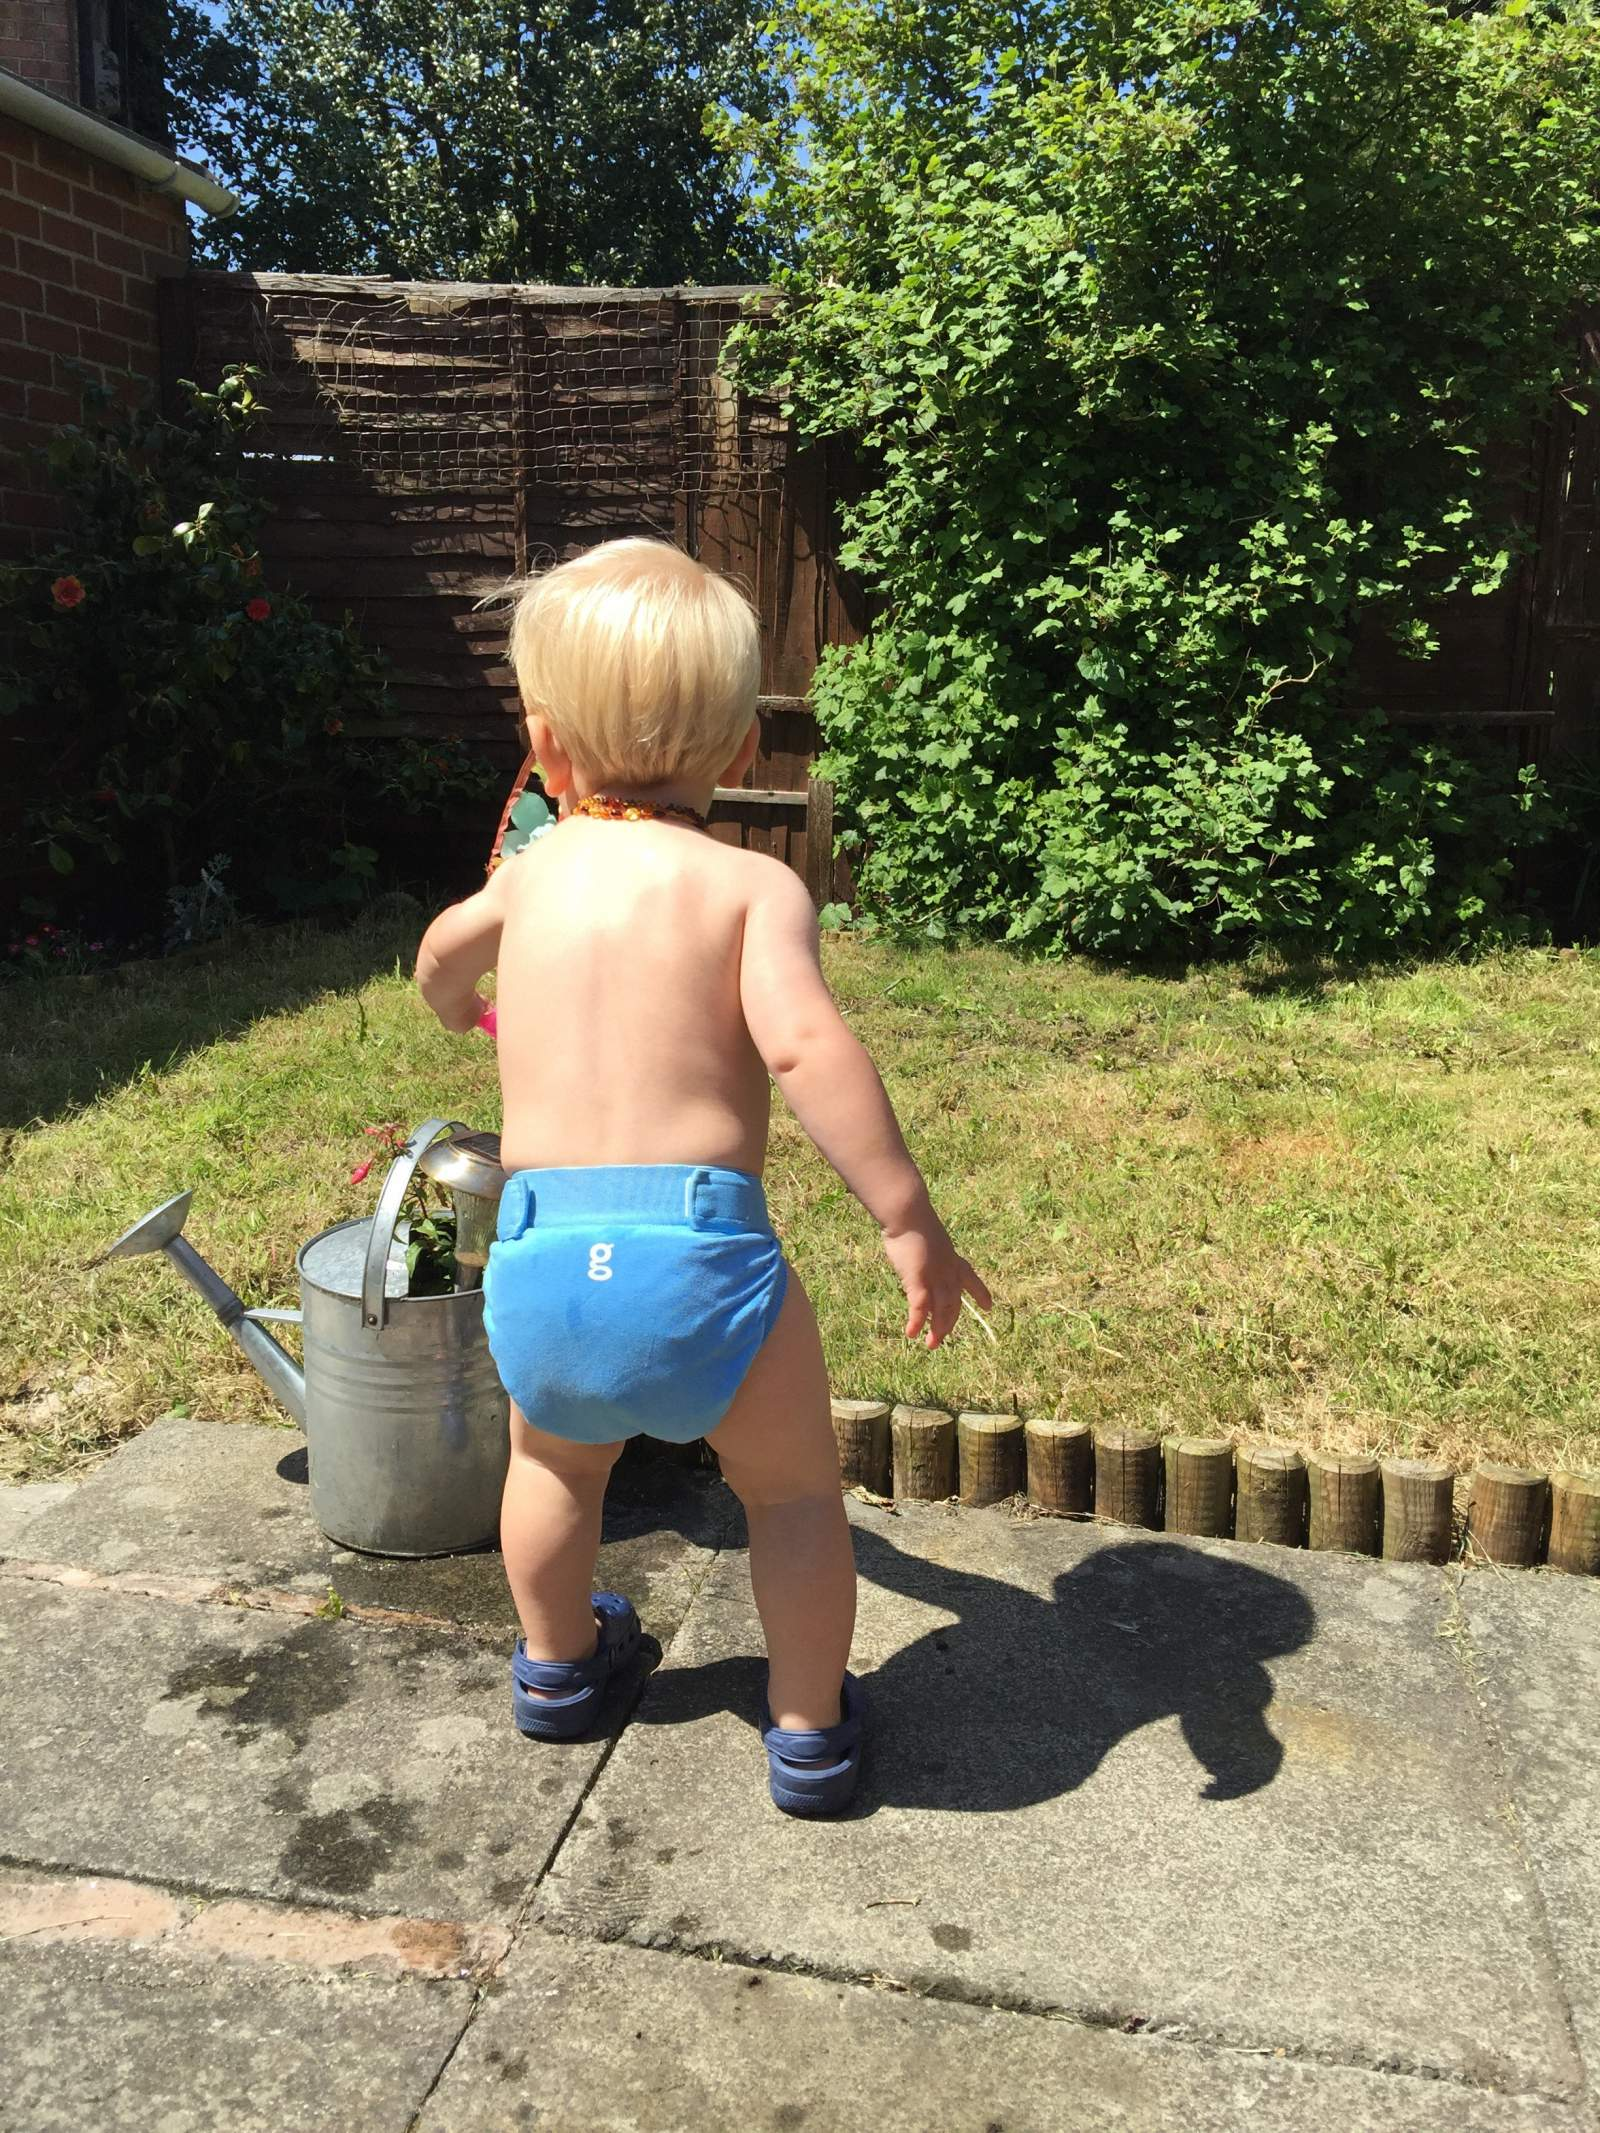 cloth nappies look really cute, theyre practical and better for the environment!